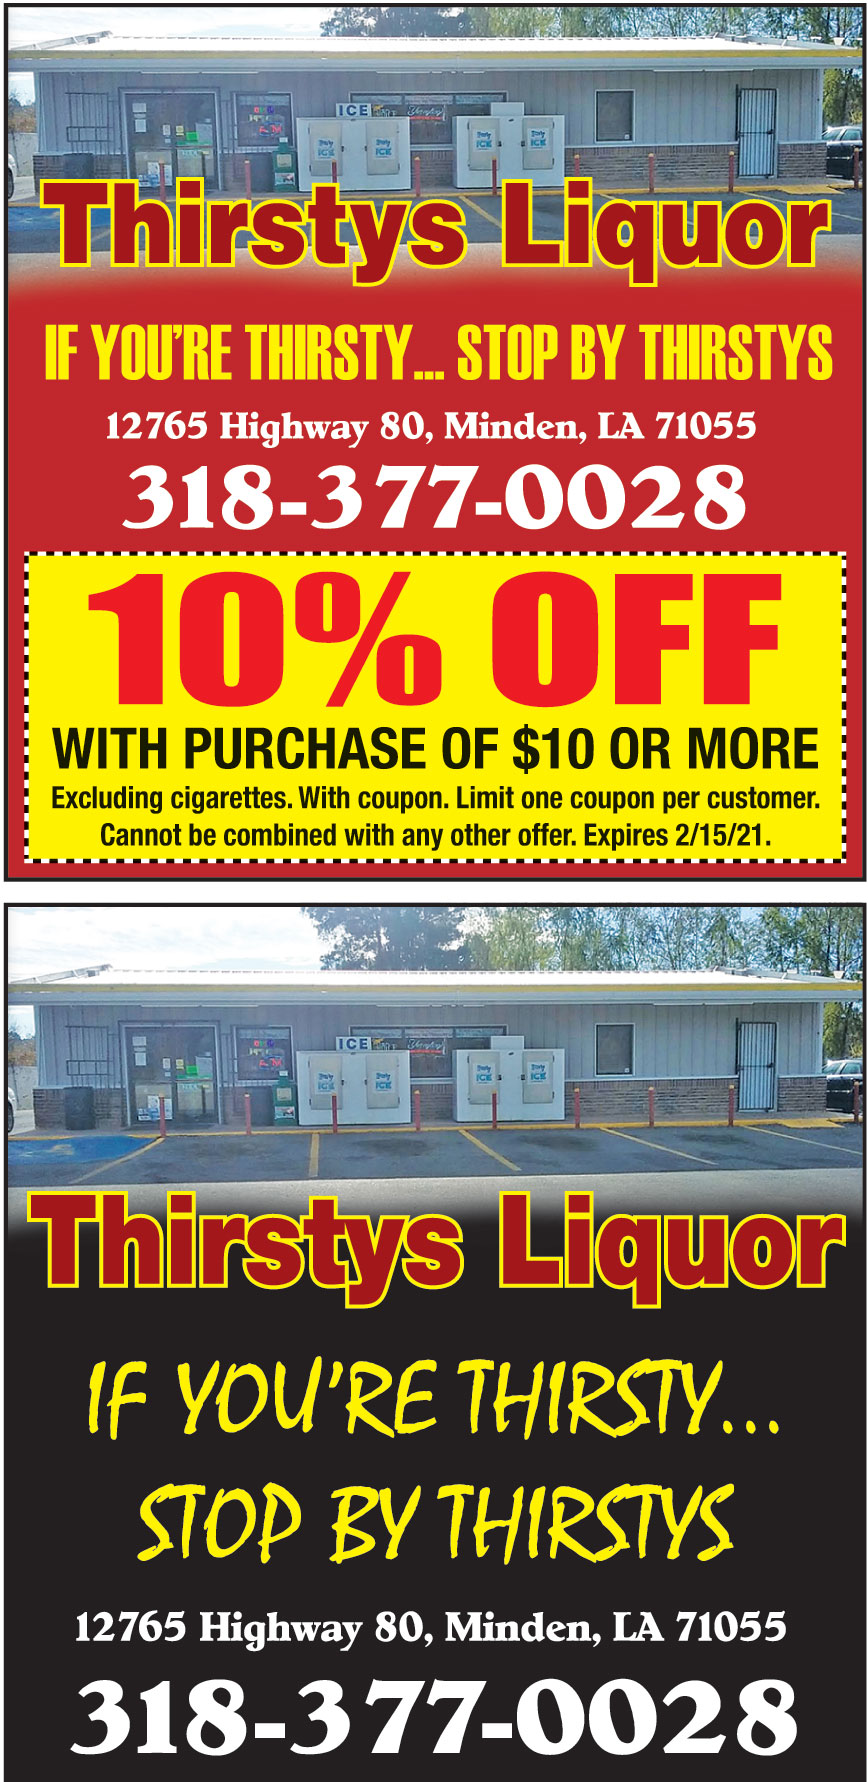 THIRSTYS LIQUOR